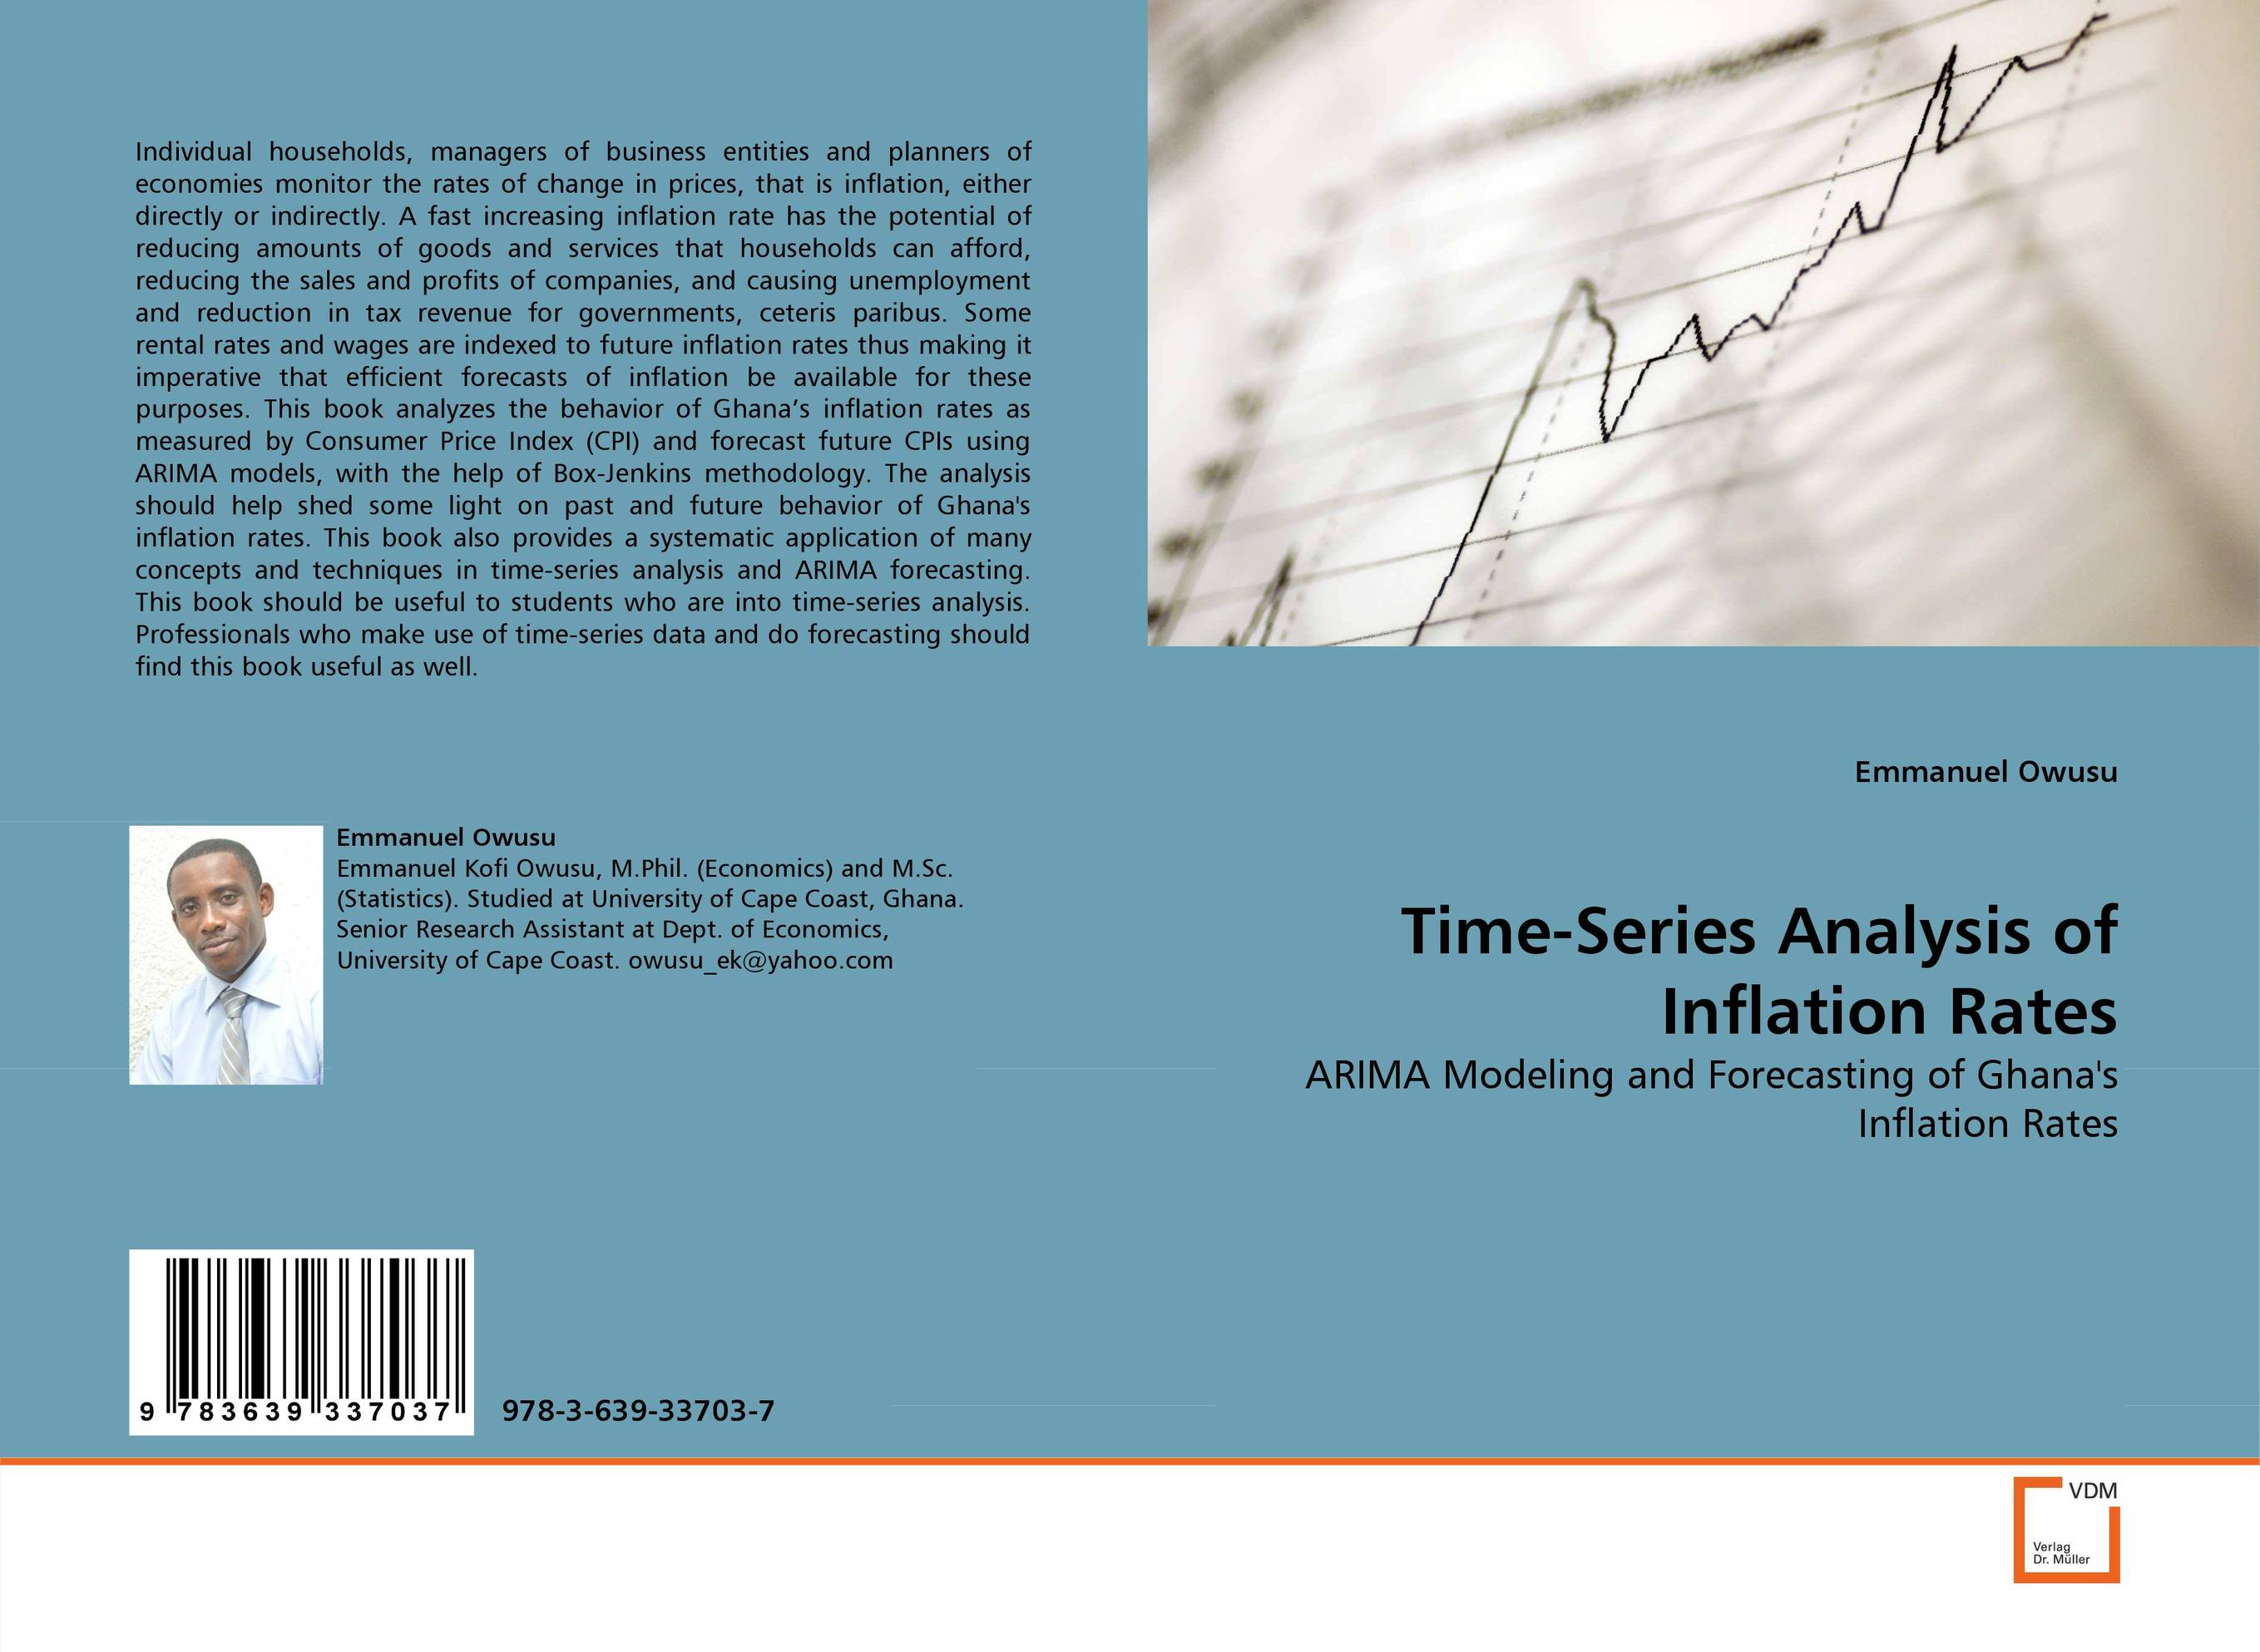 Time-Series Analysis of Inflation Rates